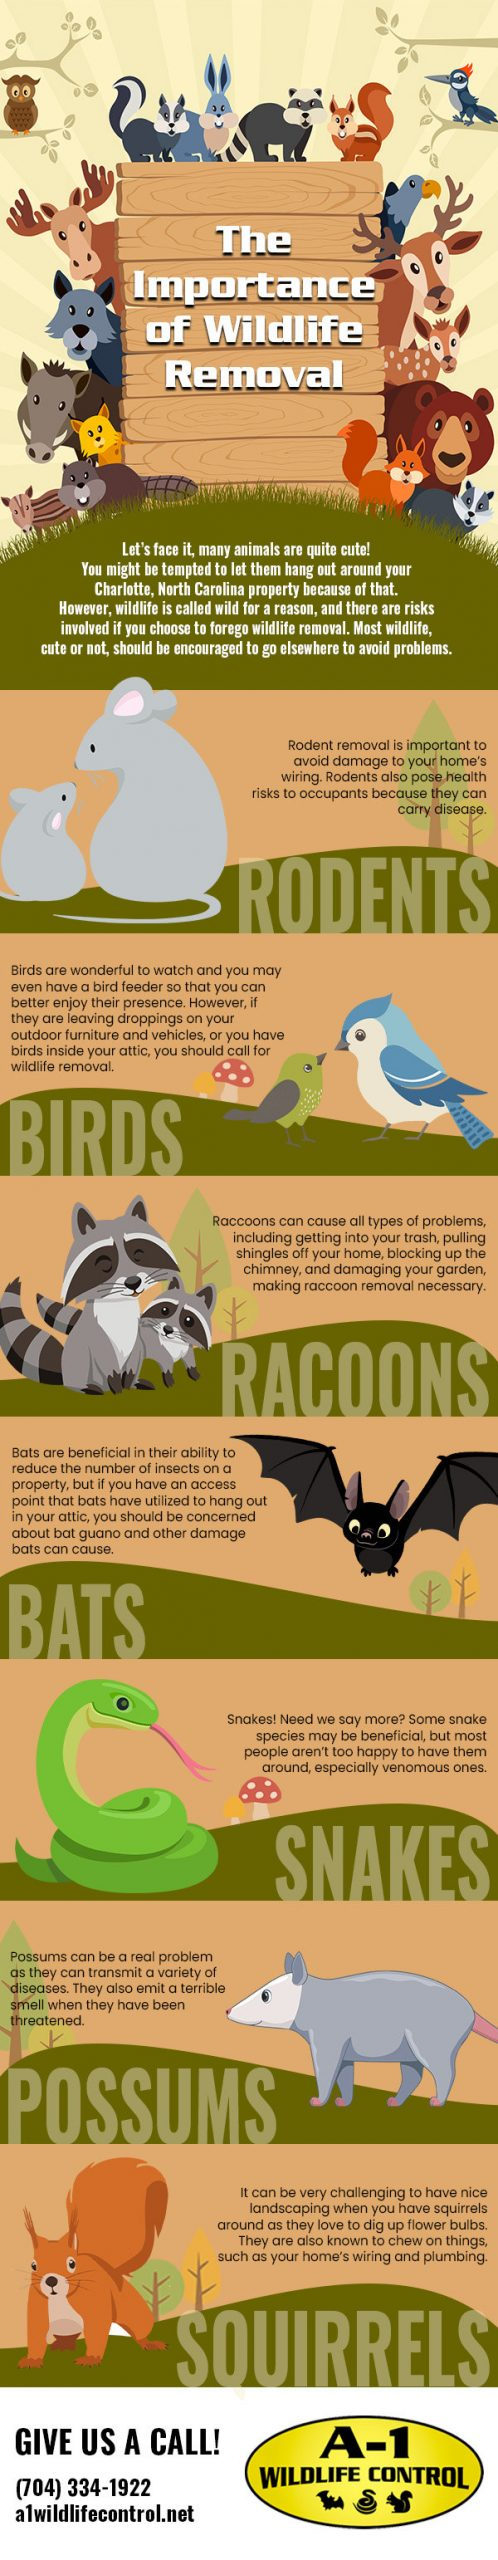 The importance of wildlife removal